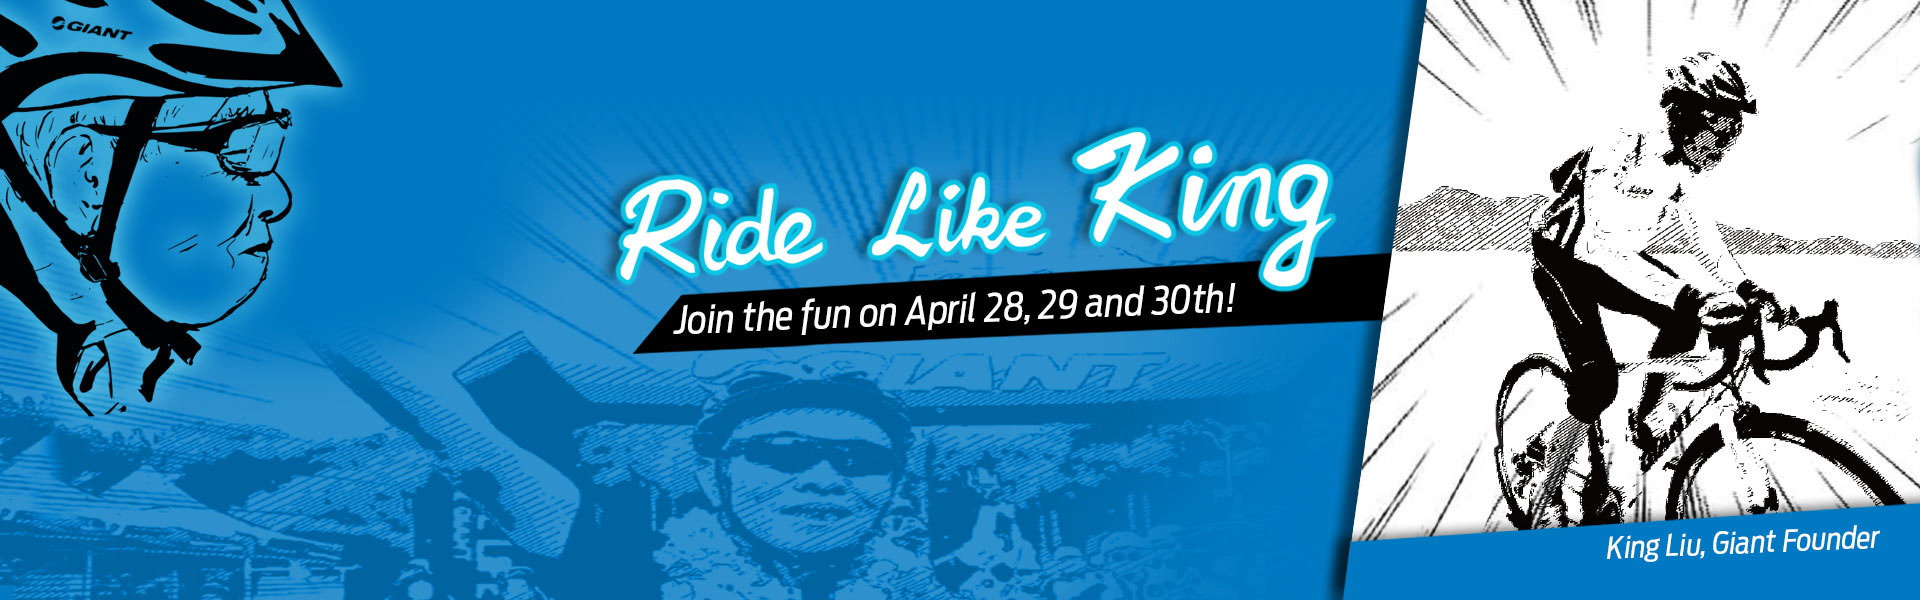 Ride Like King Event